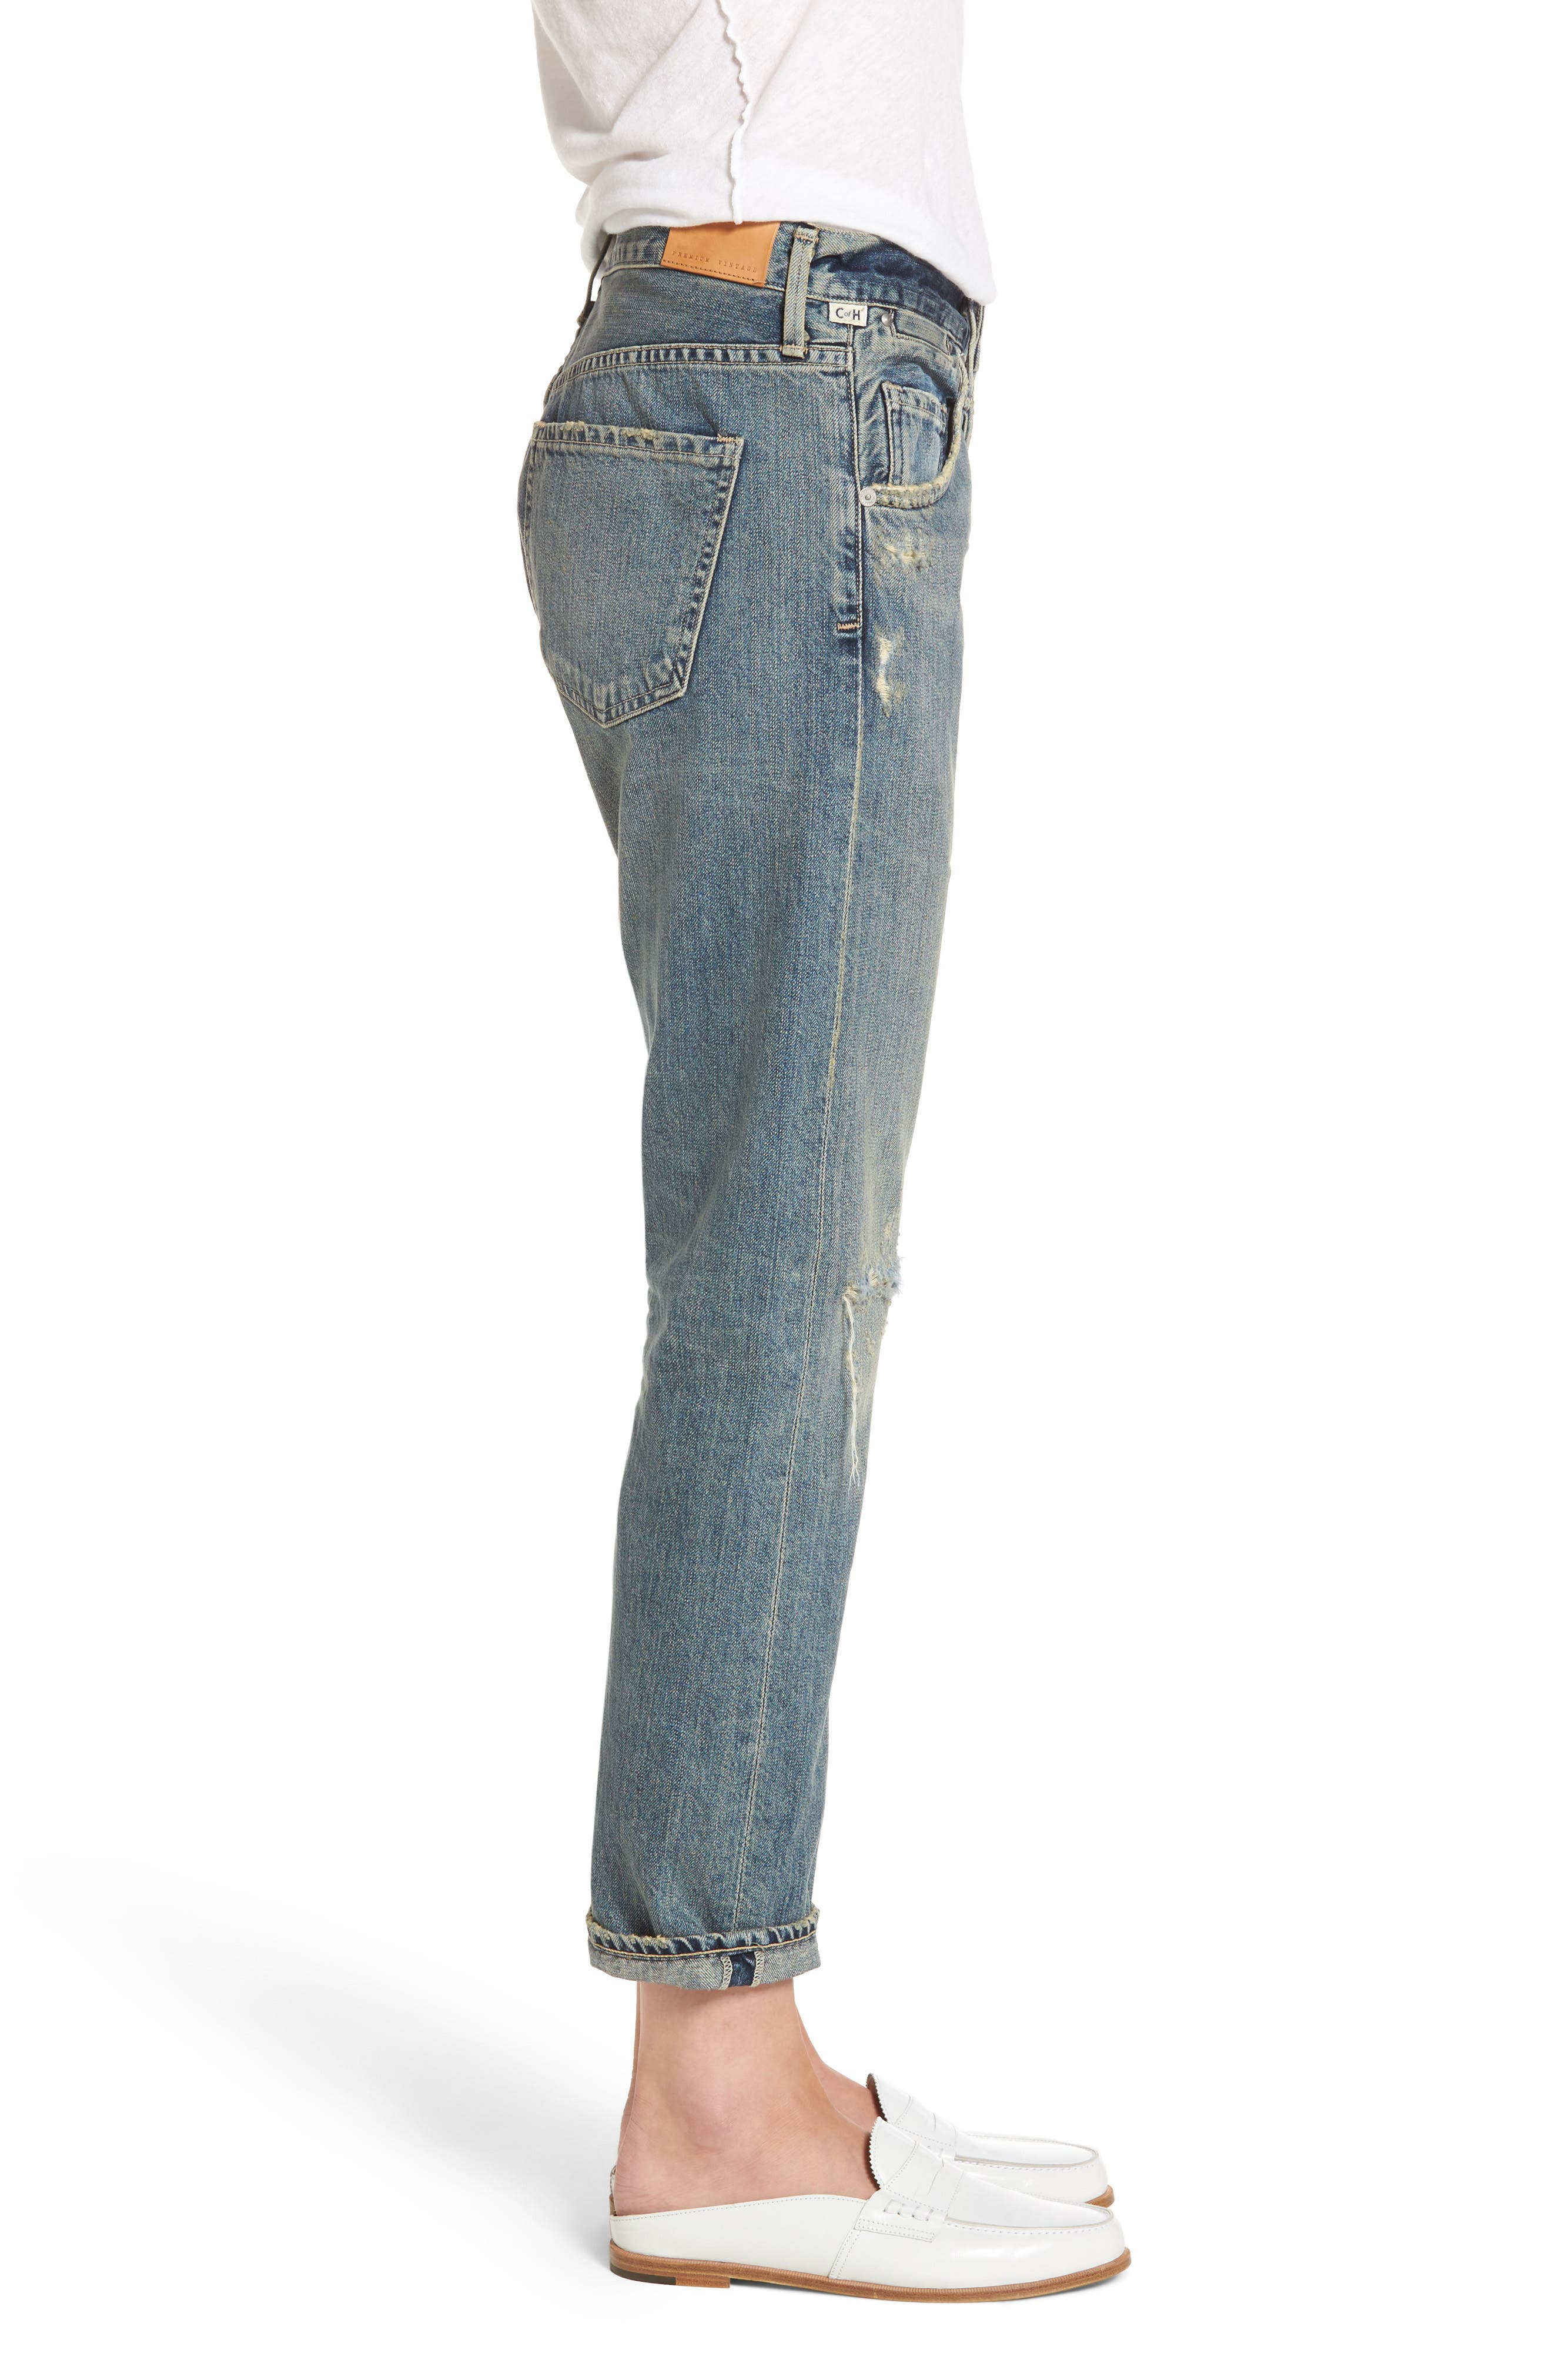 Emerson Ripped Slim Boyfriend Jeans,                             Alternate thumbnail 3, color,                             470